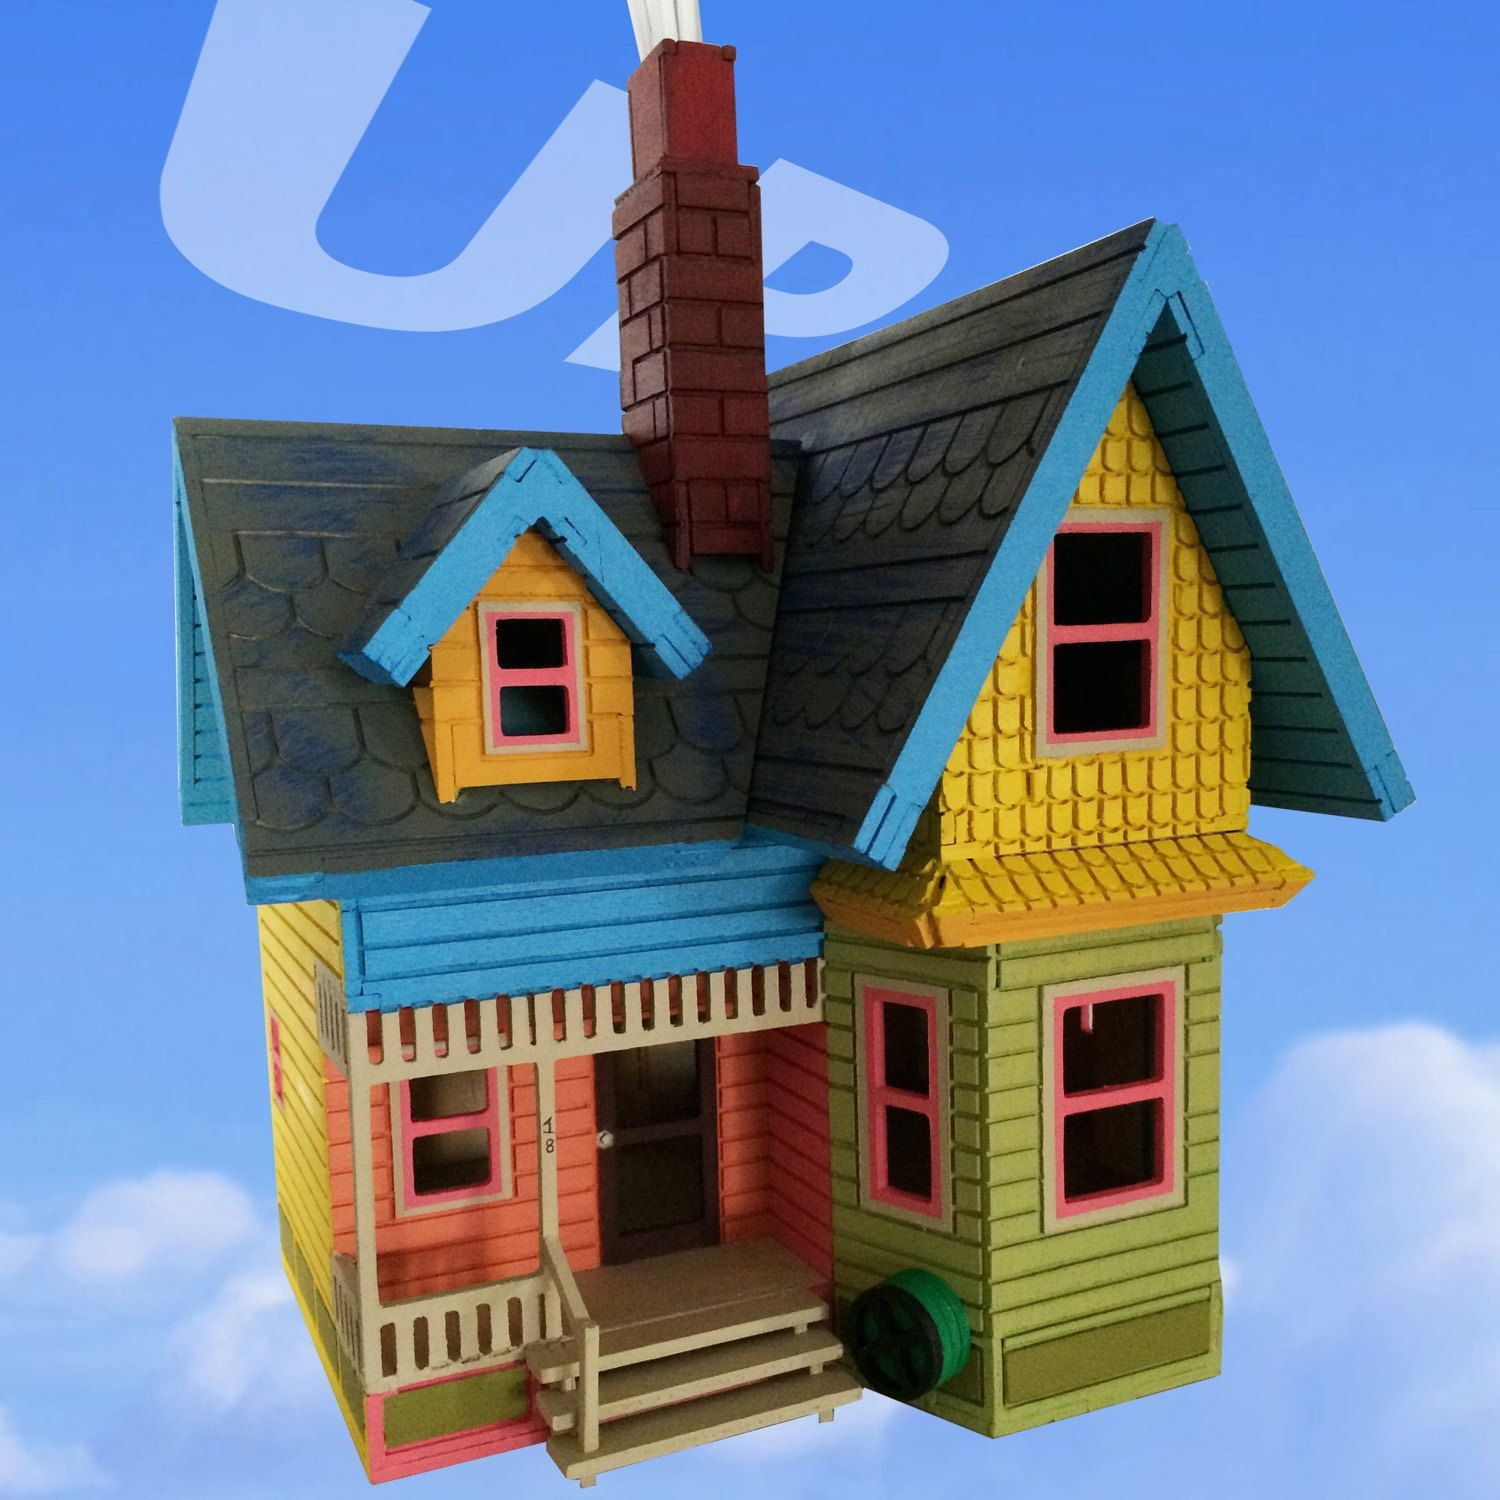 up house model kit laser engraved birthdays weddings